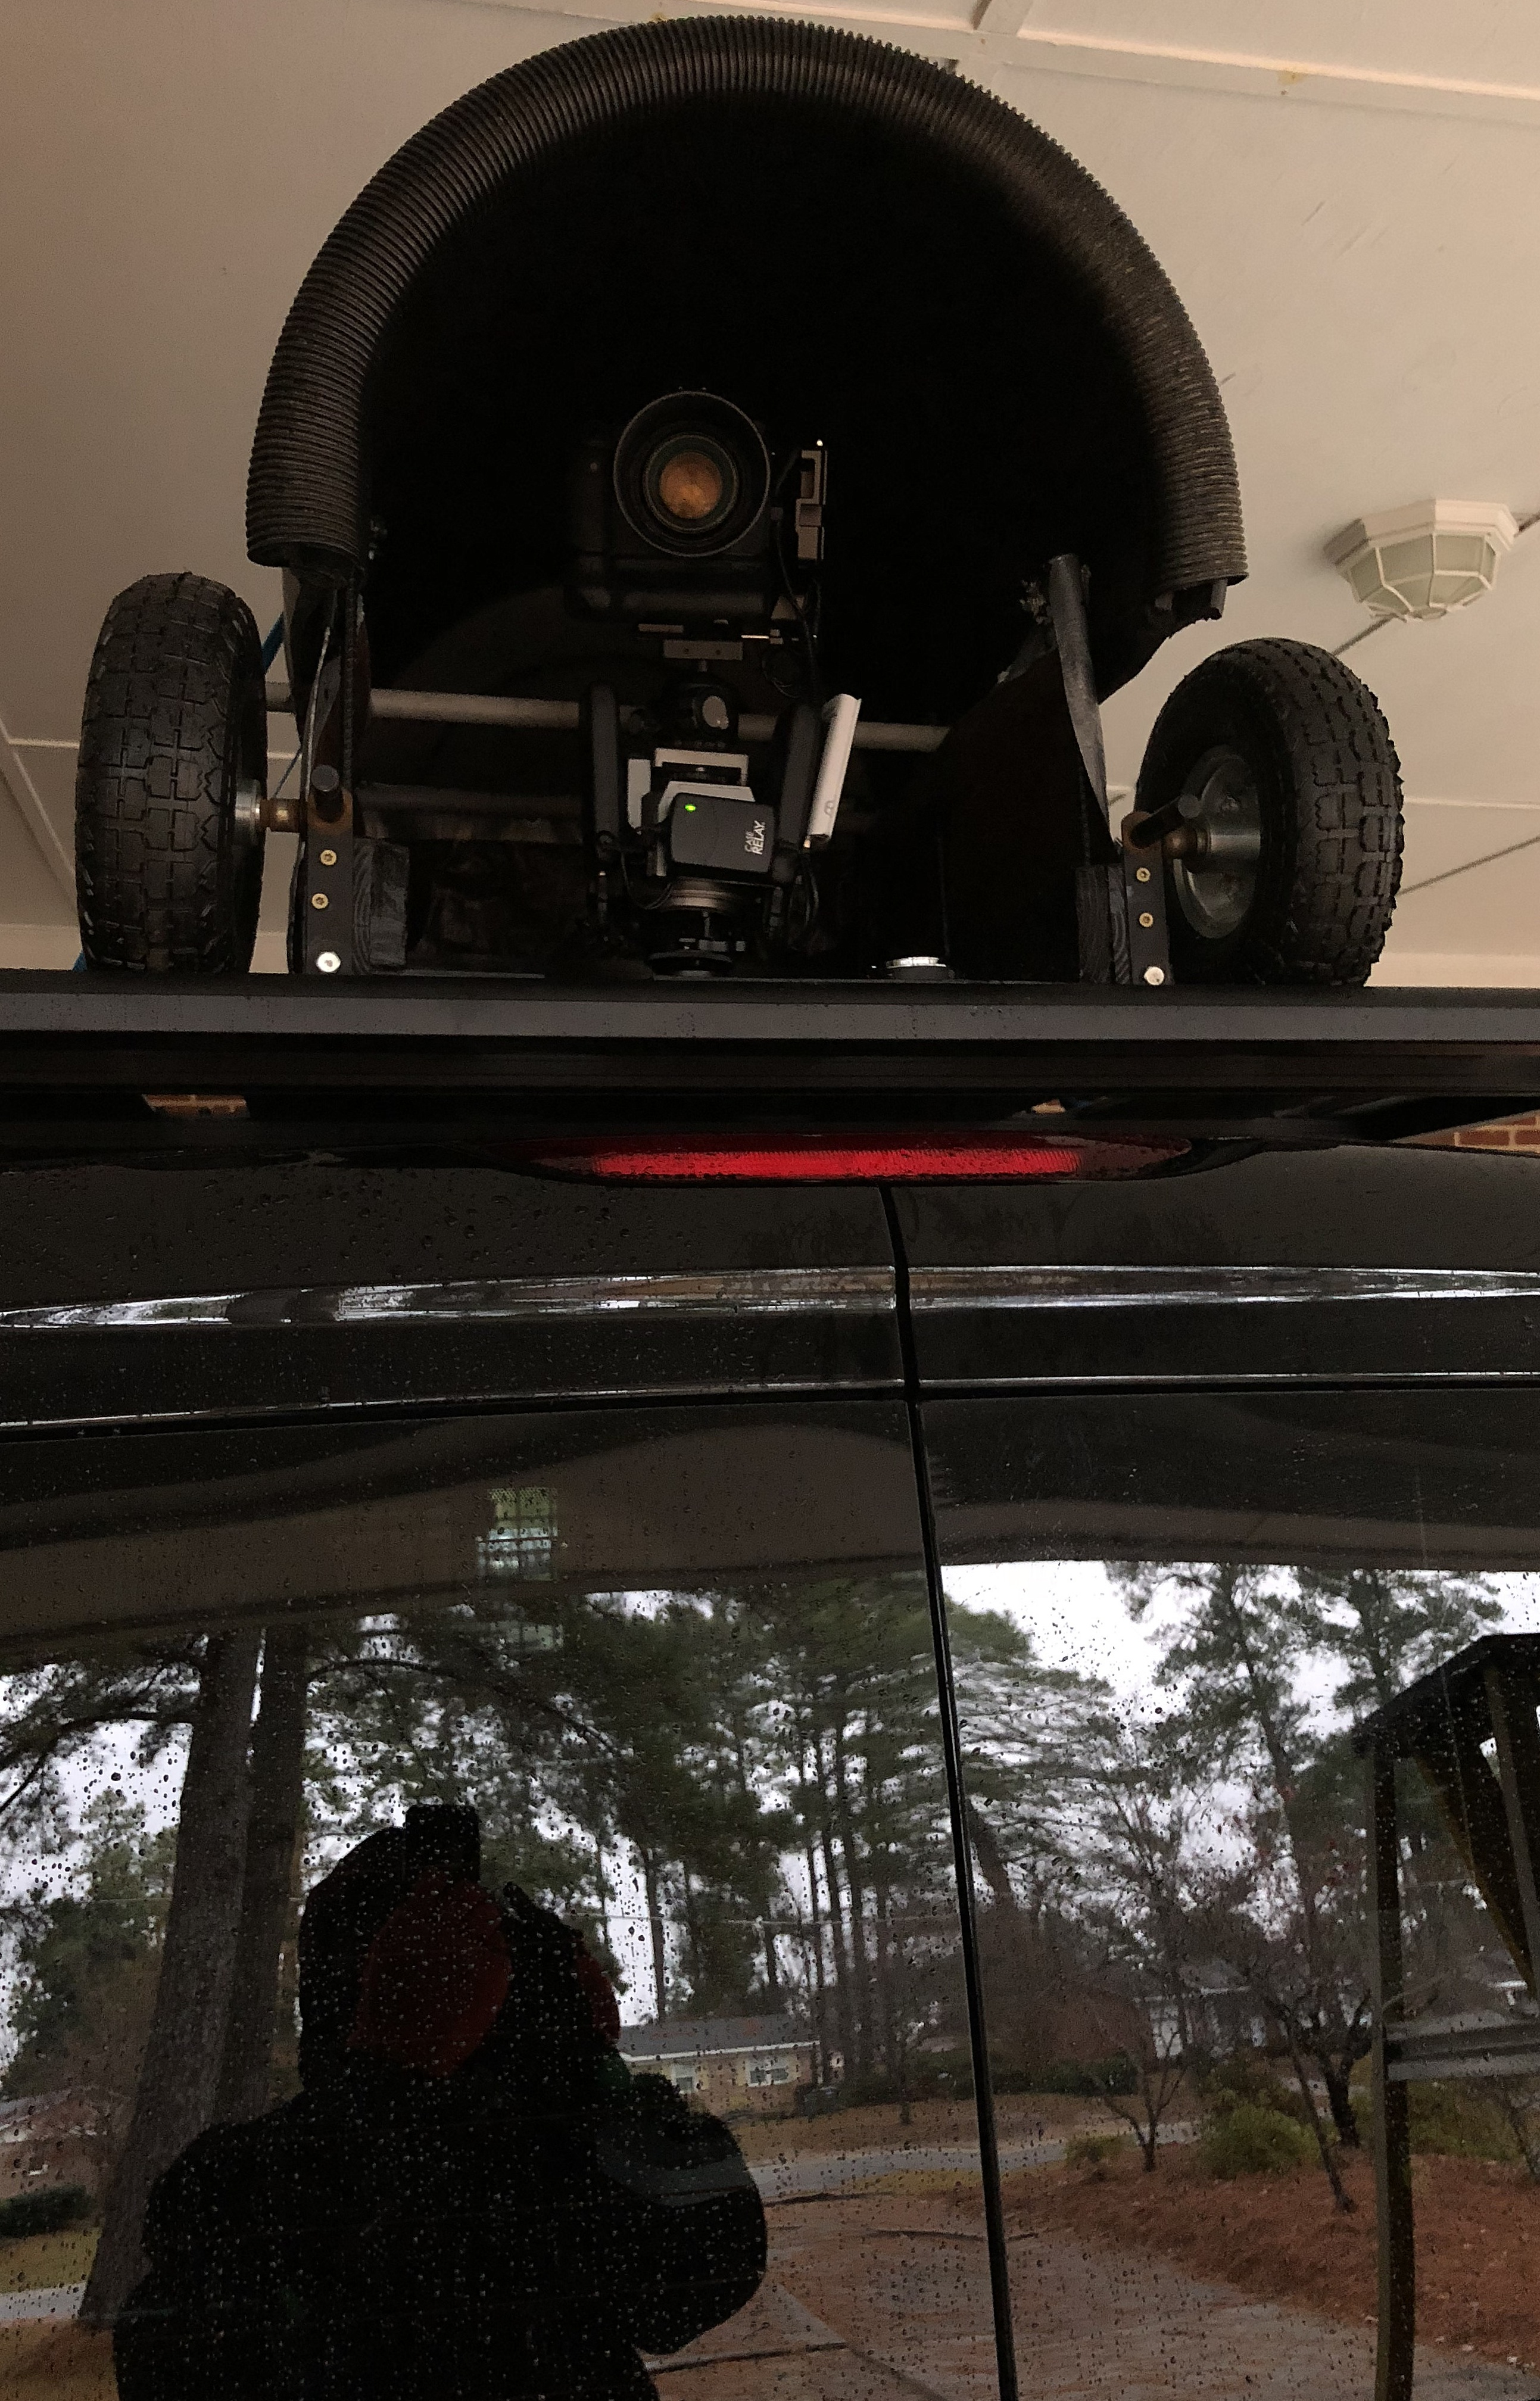 DIY [#31] ~ Rain Cover–CamRanger System–now atop the van, 12/08